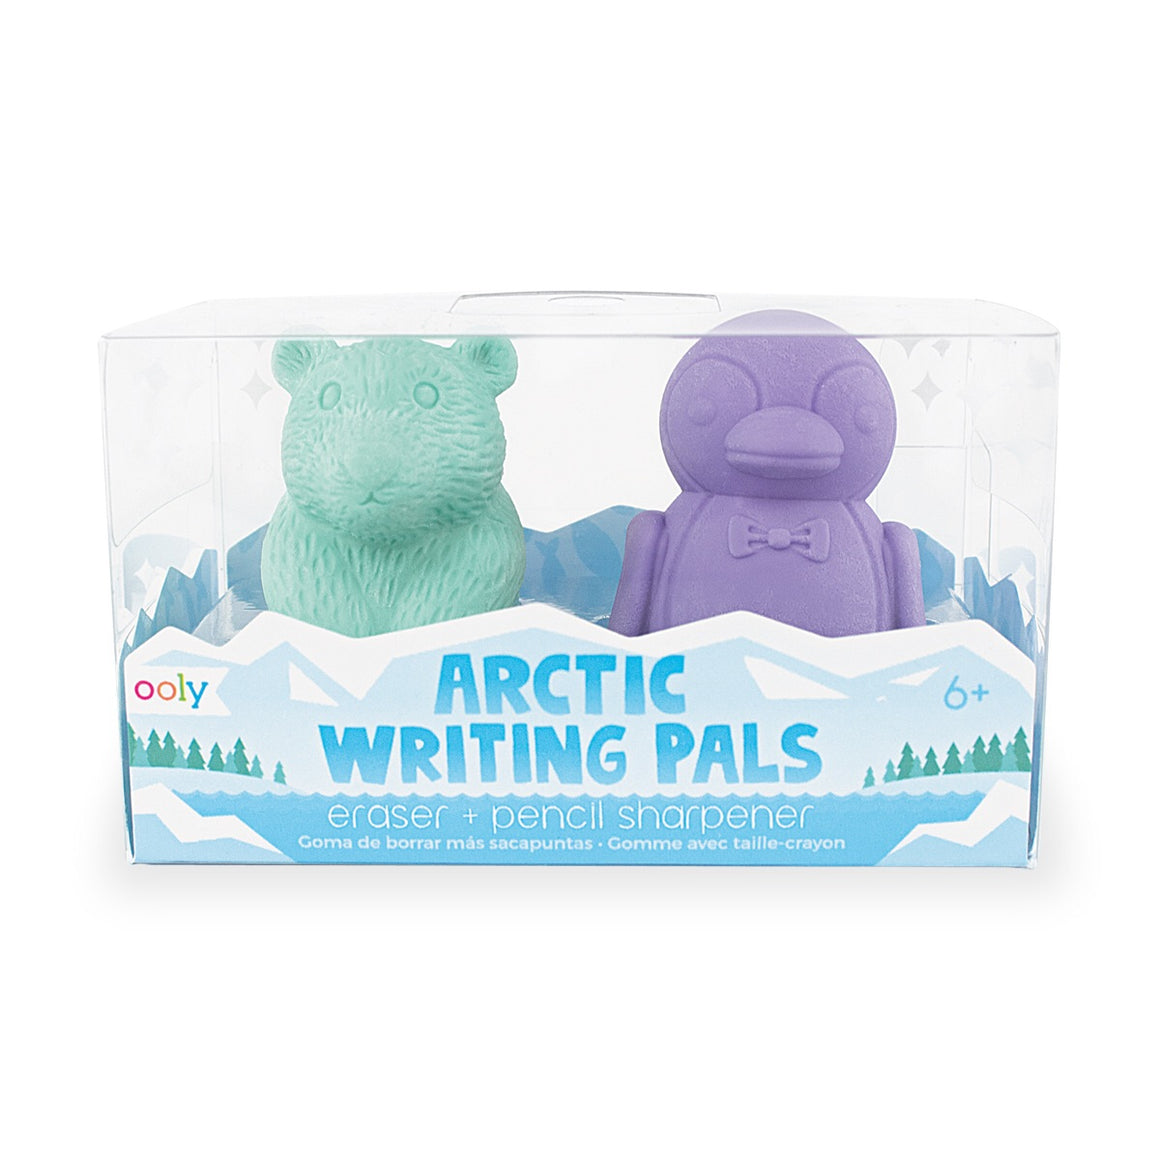 Arctic Writing Pals Erasers & Sharpeners - Lola & Lark